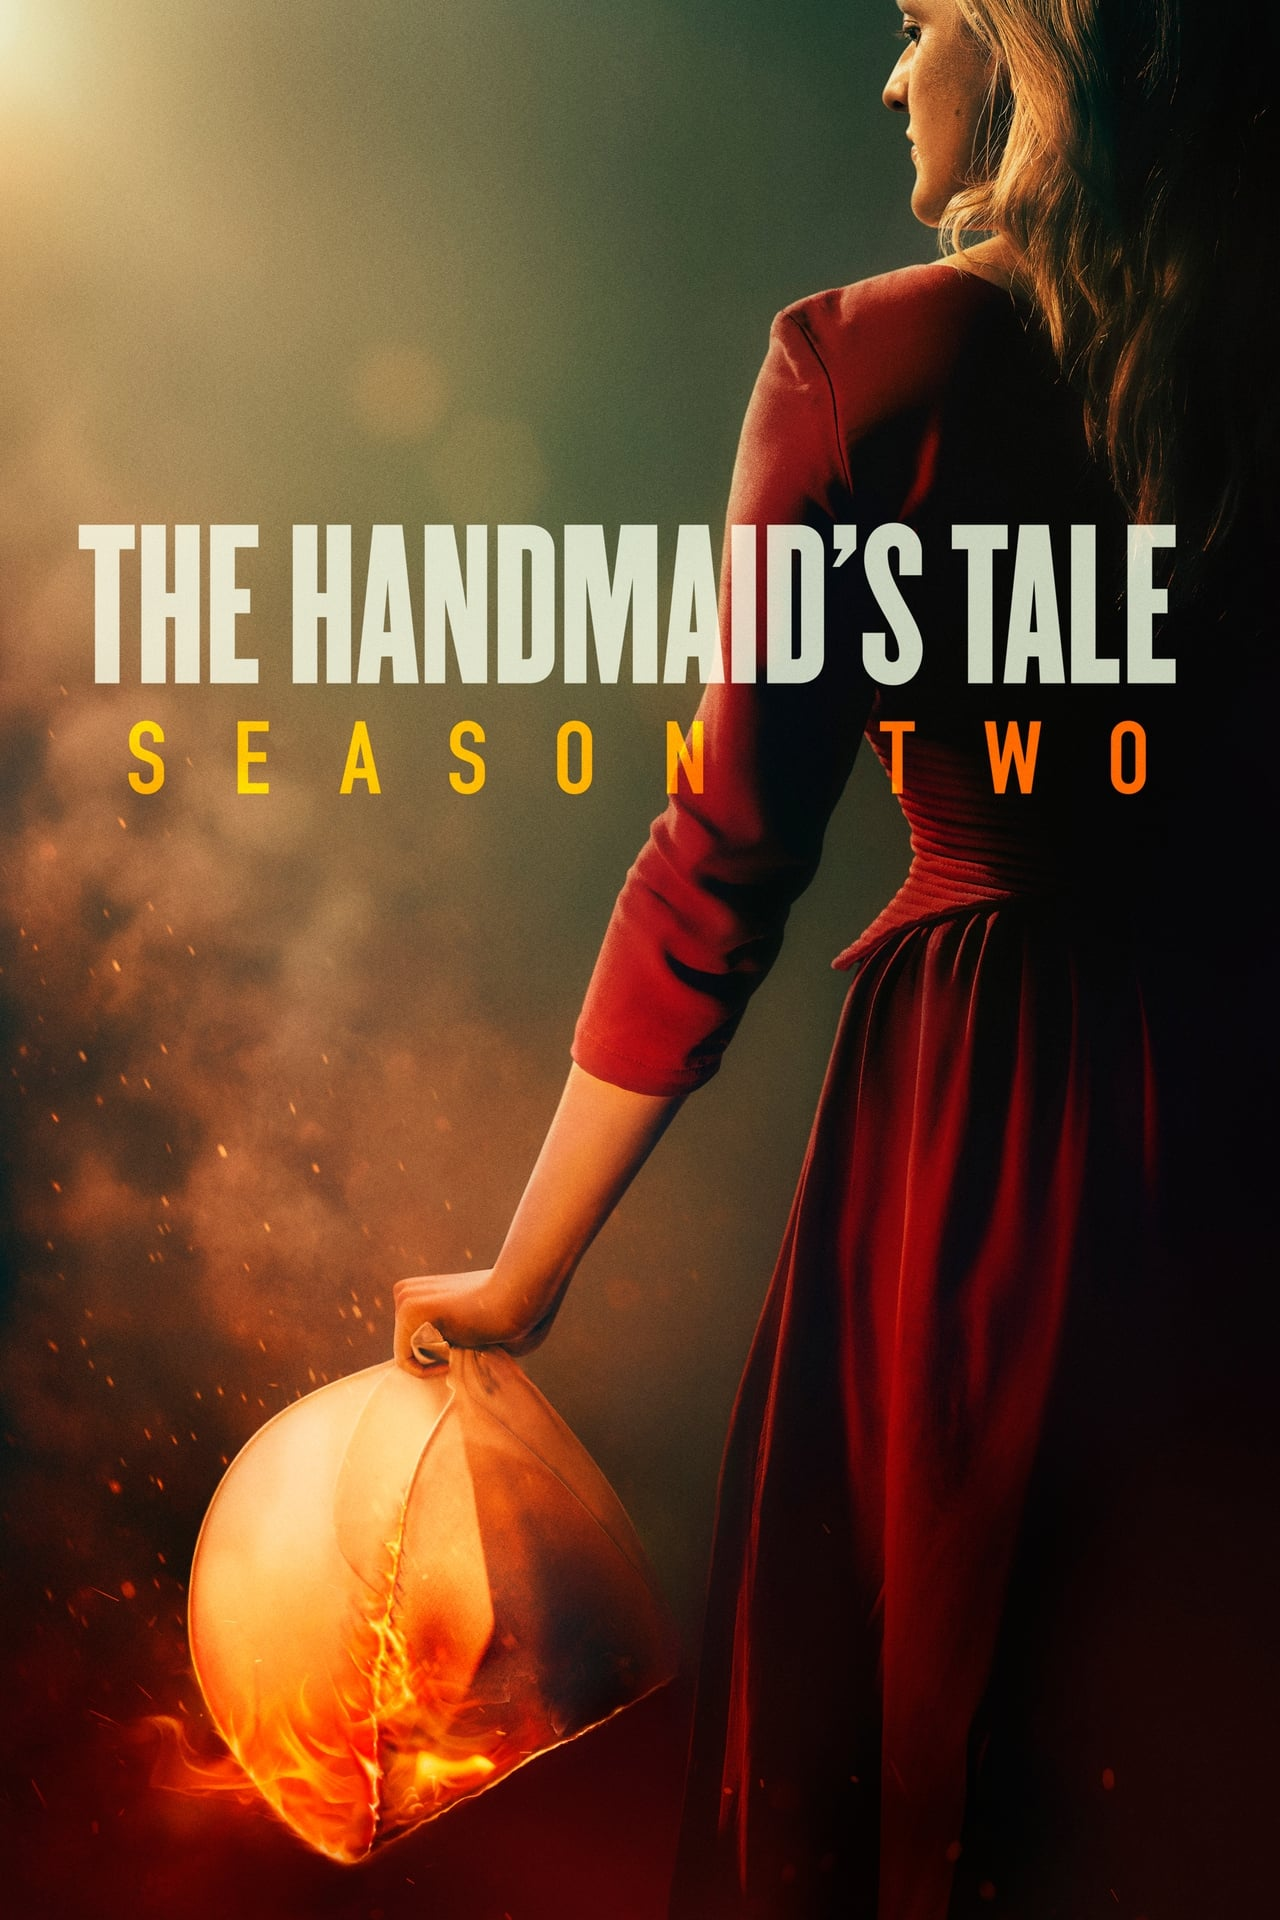 Watch The Handmaid's Tale Season 2 Online